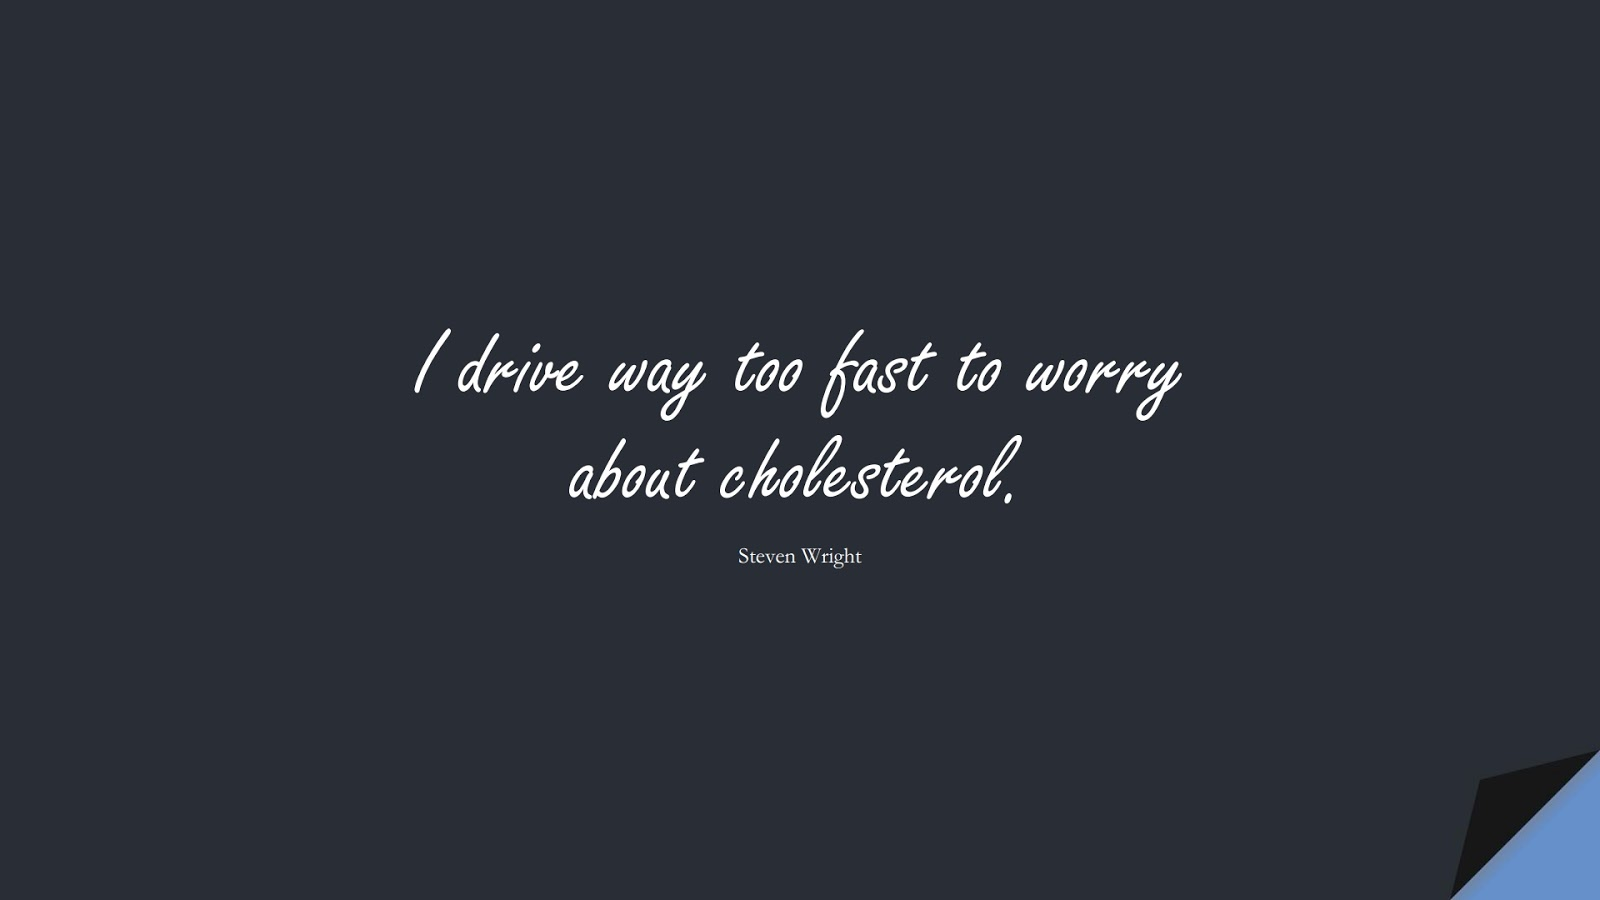 I drive way too fast to worry about cholesterol. (Steven Wright);  #HealthQuotes